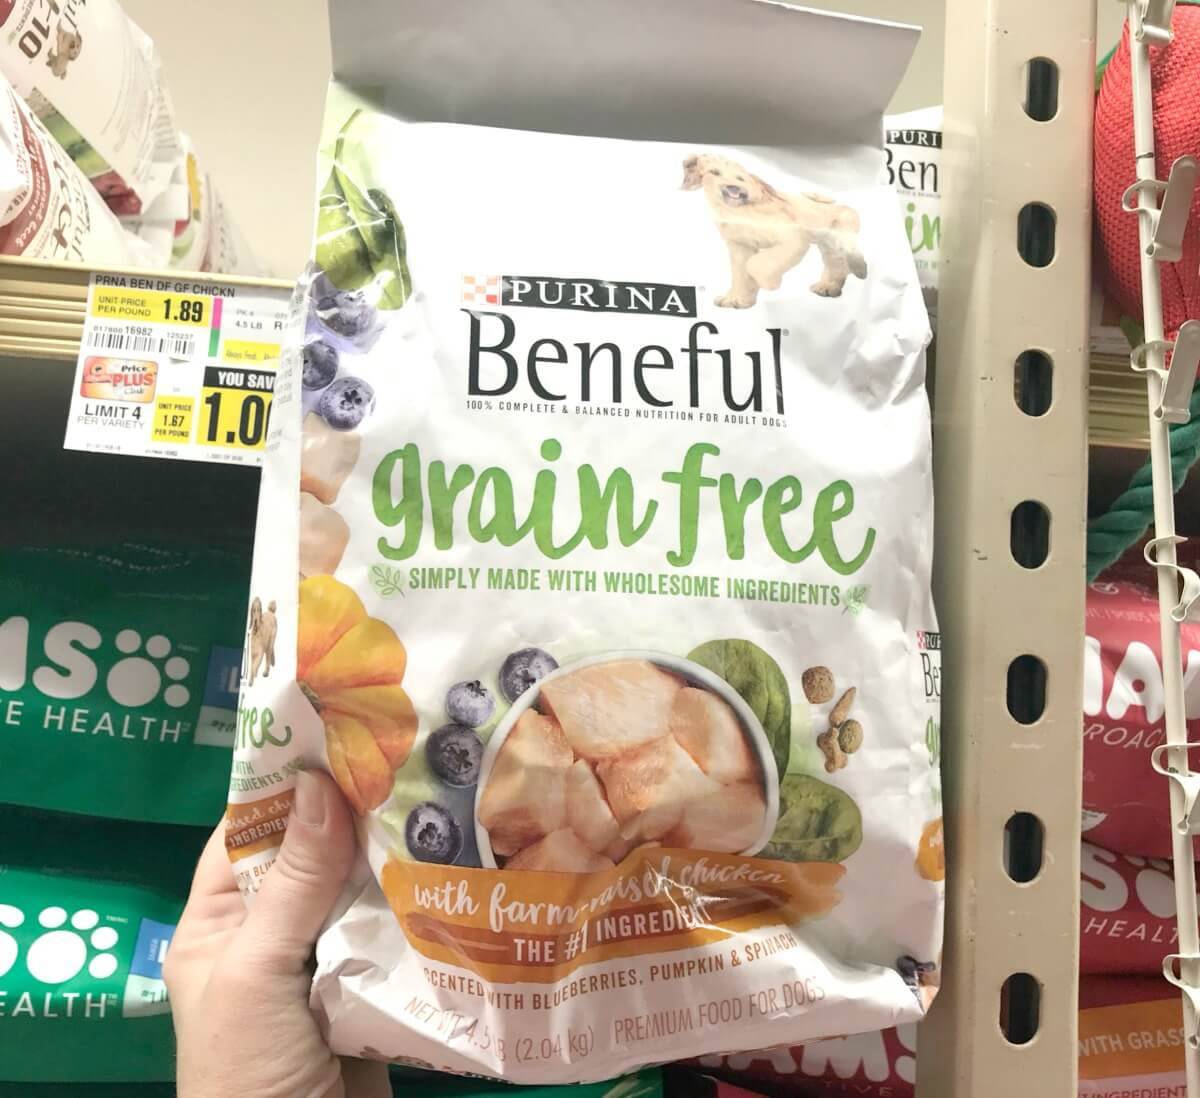 fc8077f59f1 Beneful Dog Food Just $1.48 at Dollar General! {11/8 - 11/10}Living ...